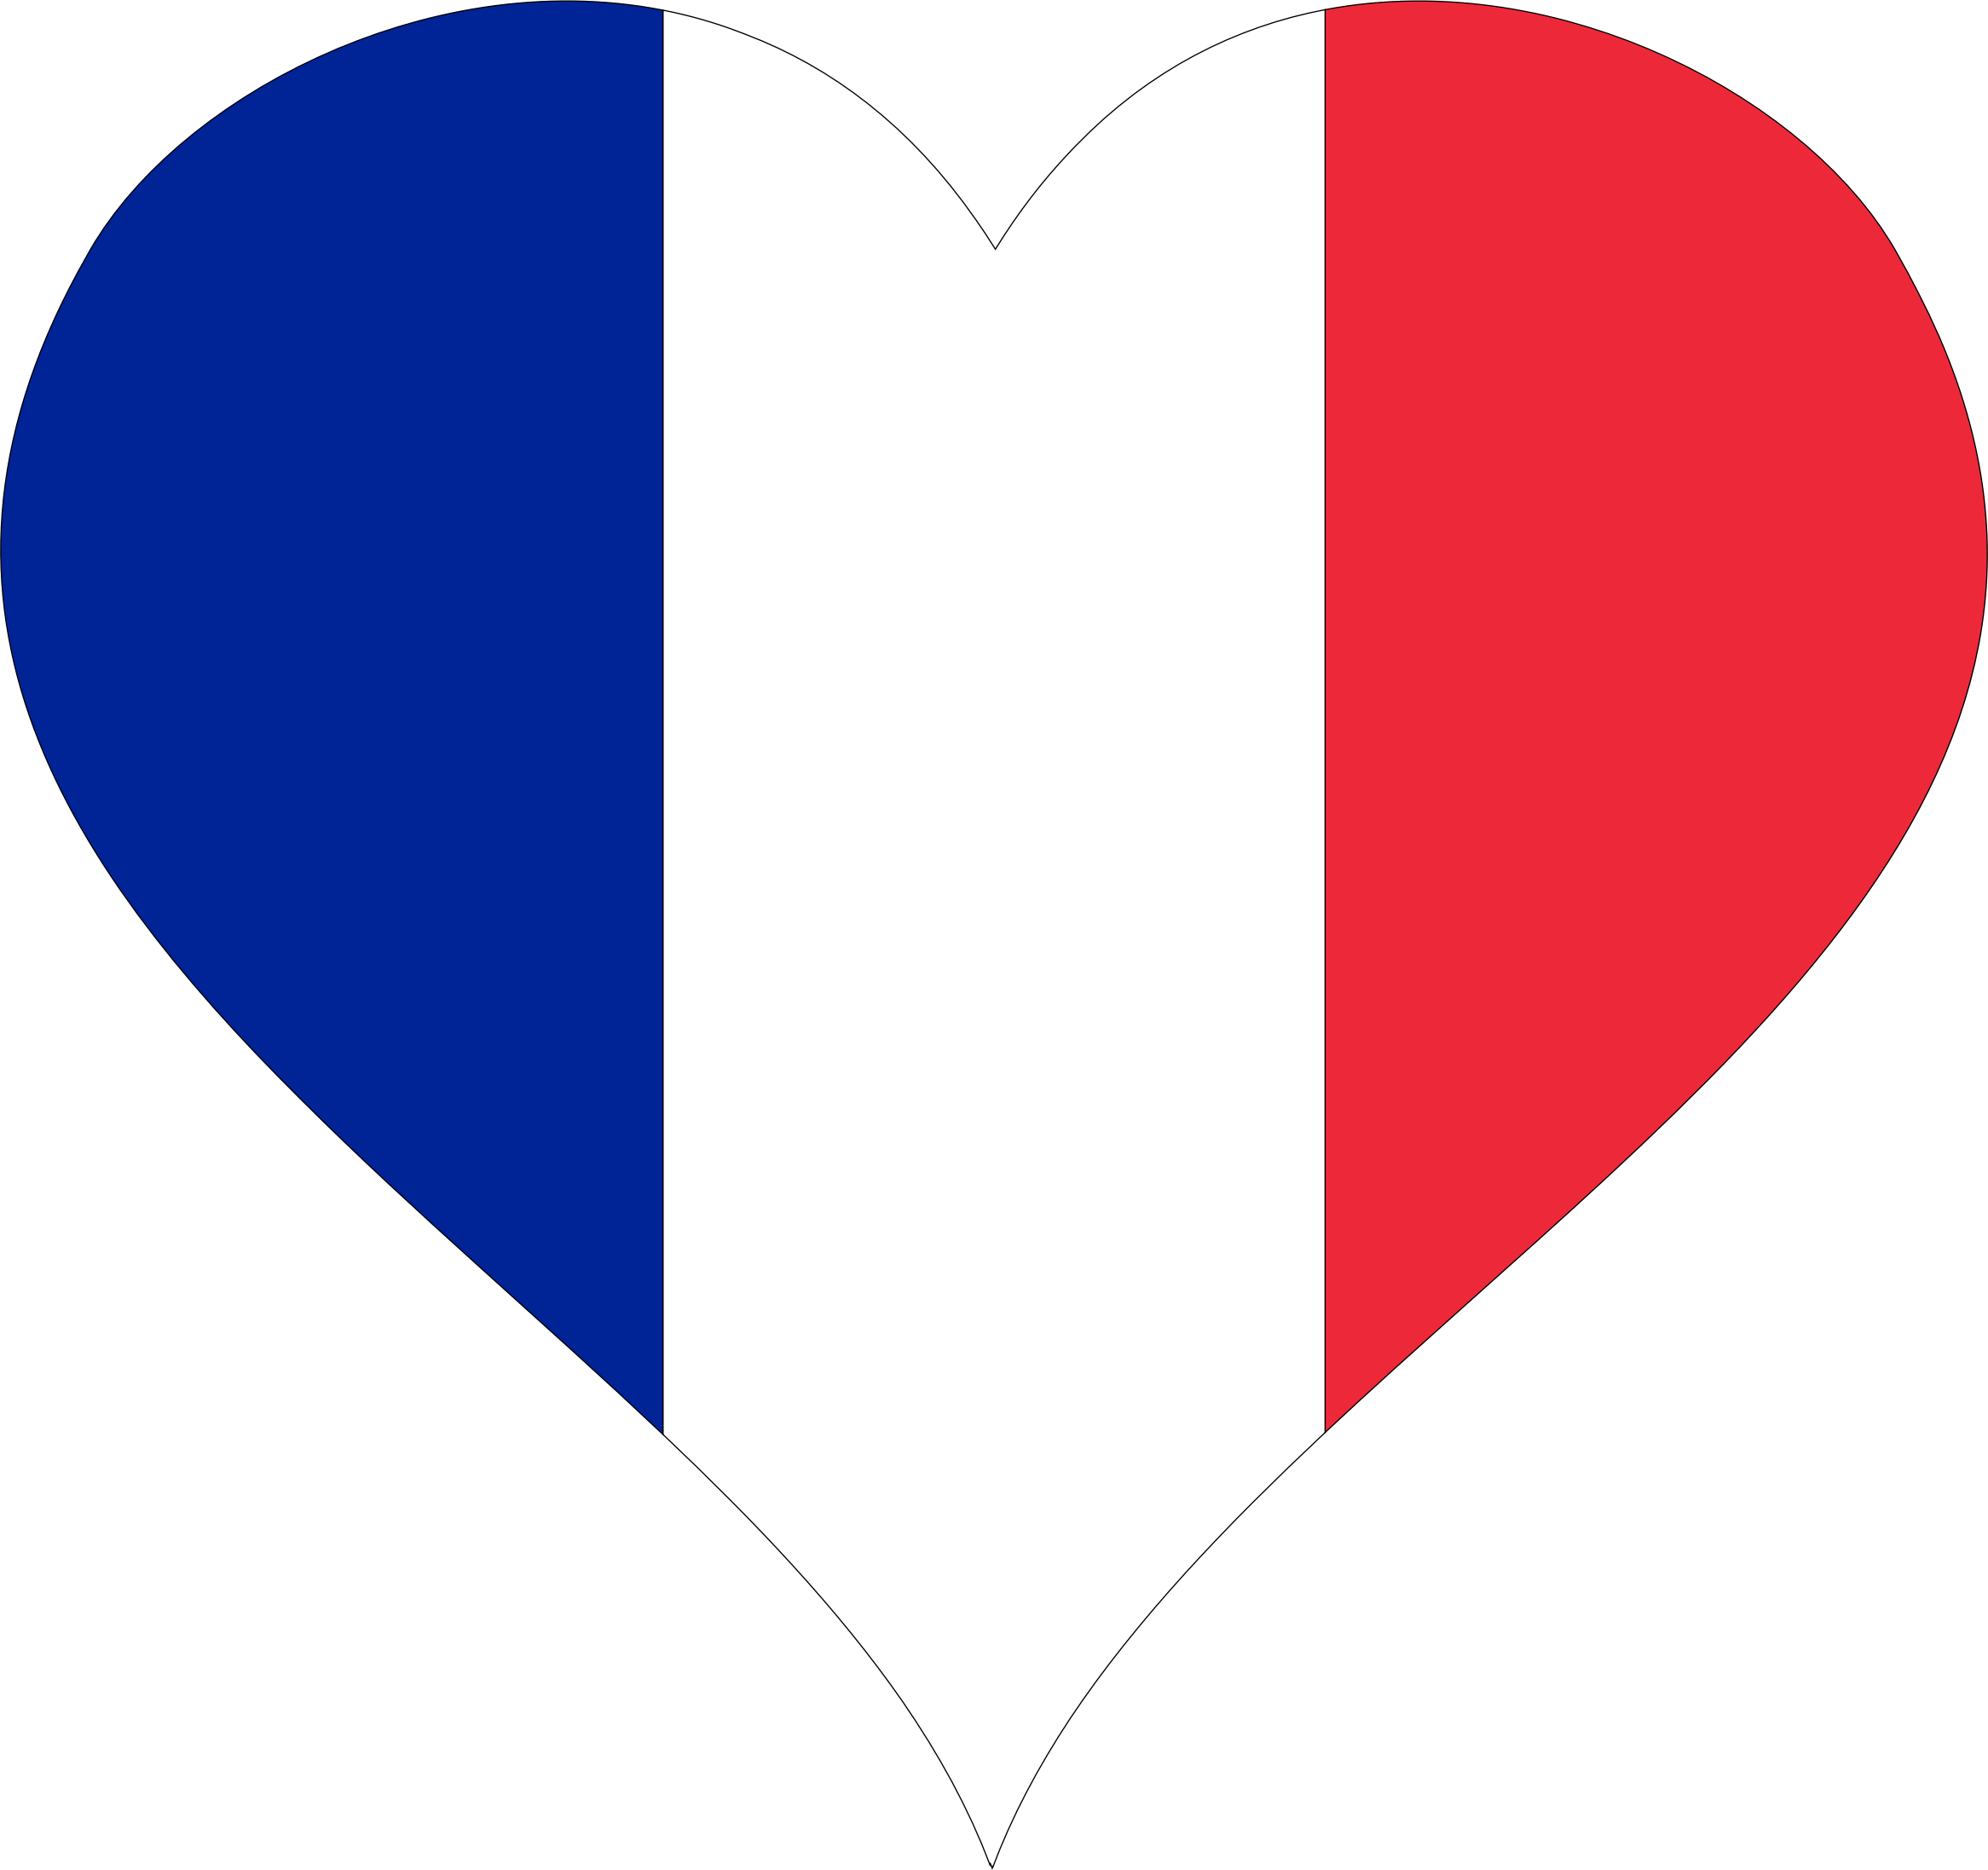 Heart icons png free. France clipart fractal